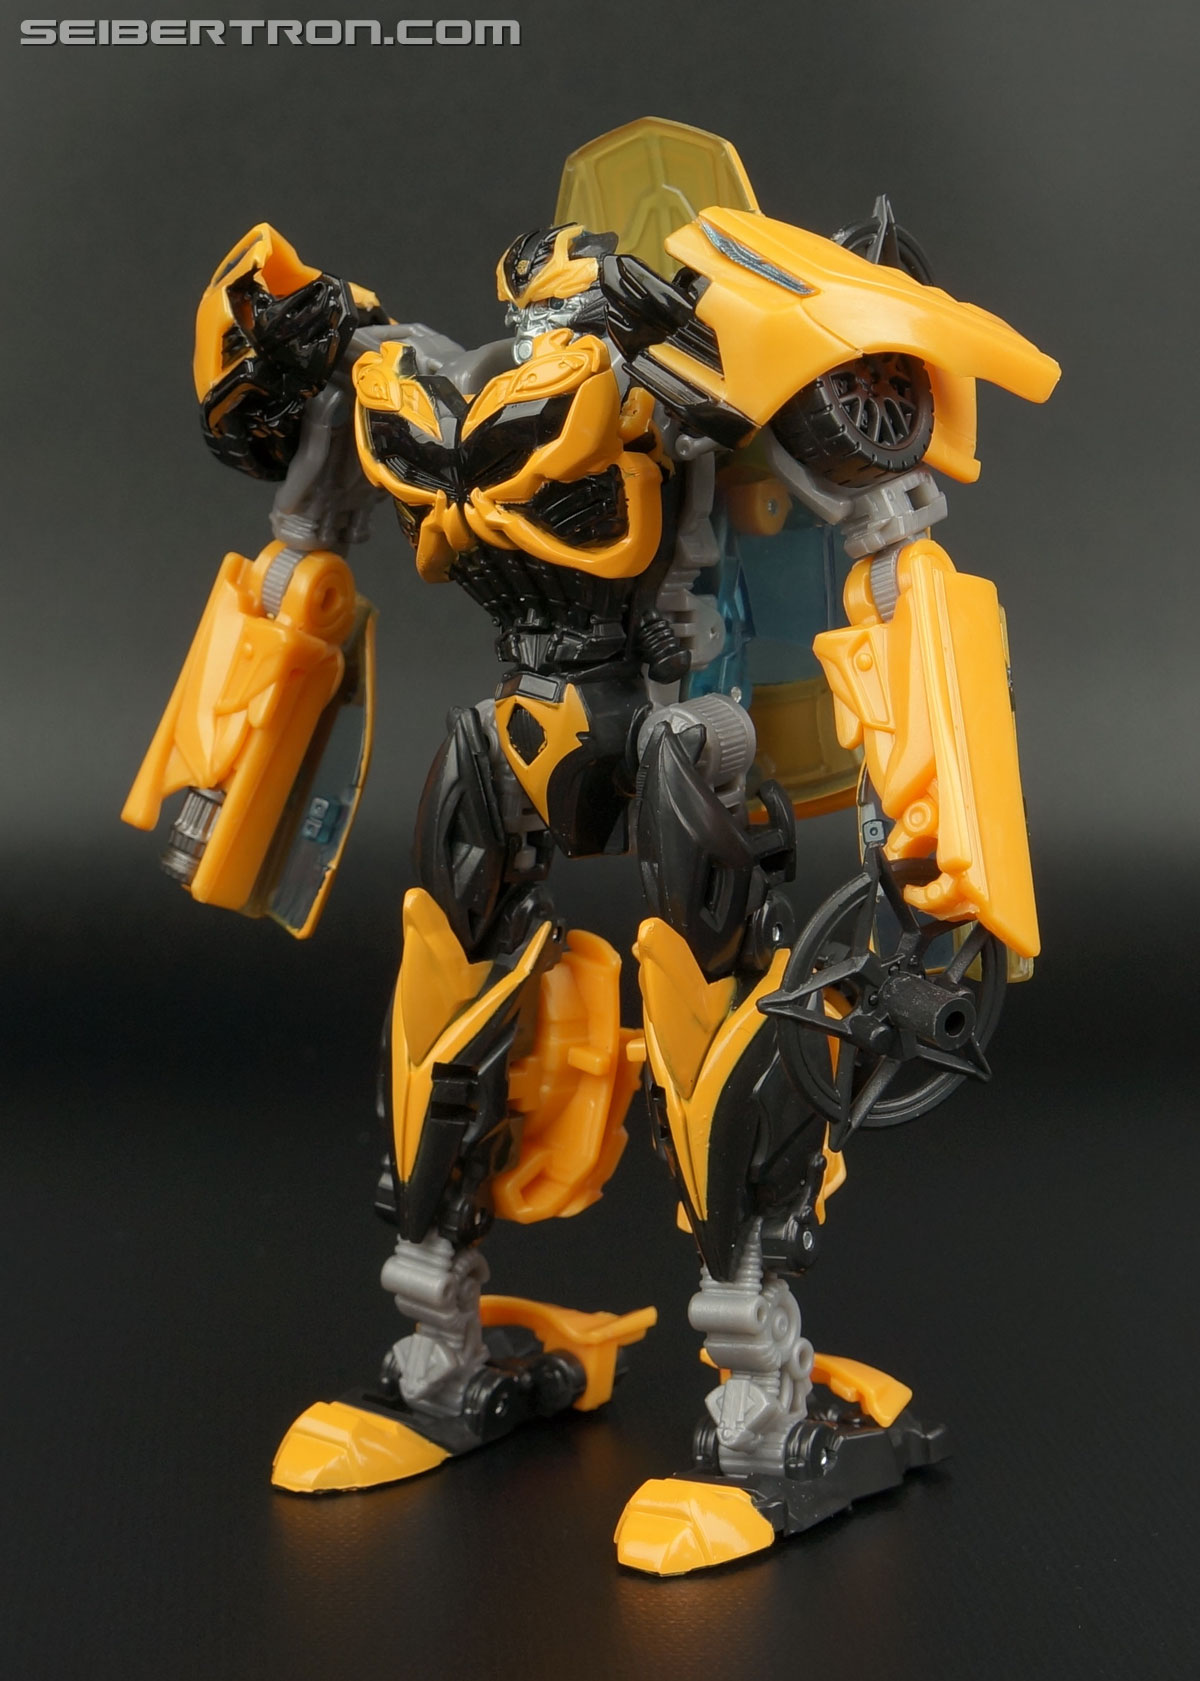 Transformers Age of Extinction: Generations Bumblebee (Image #74 of 190)